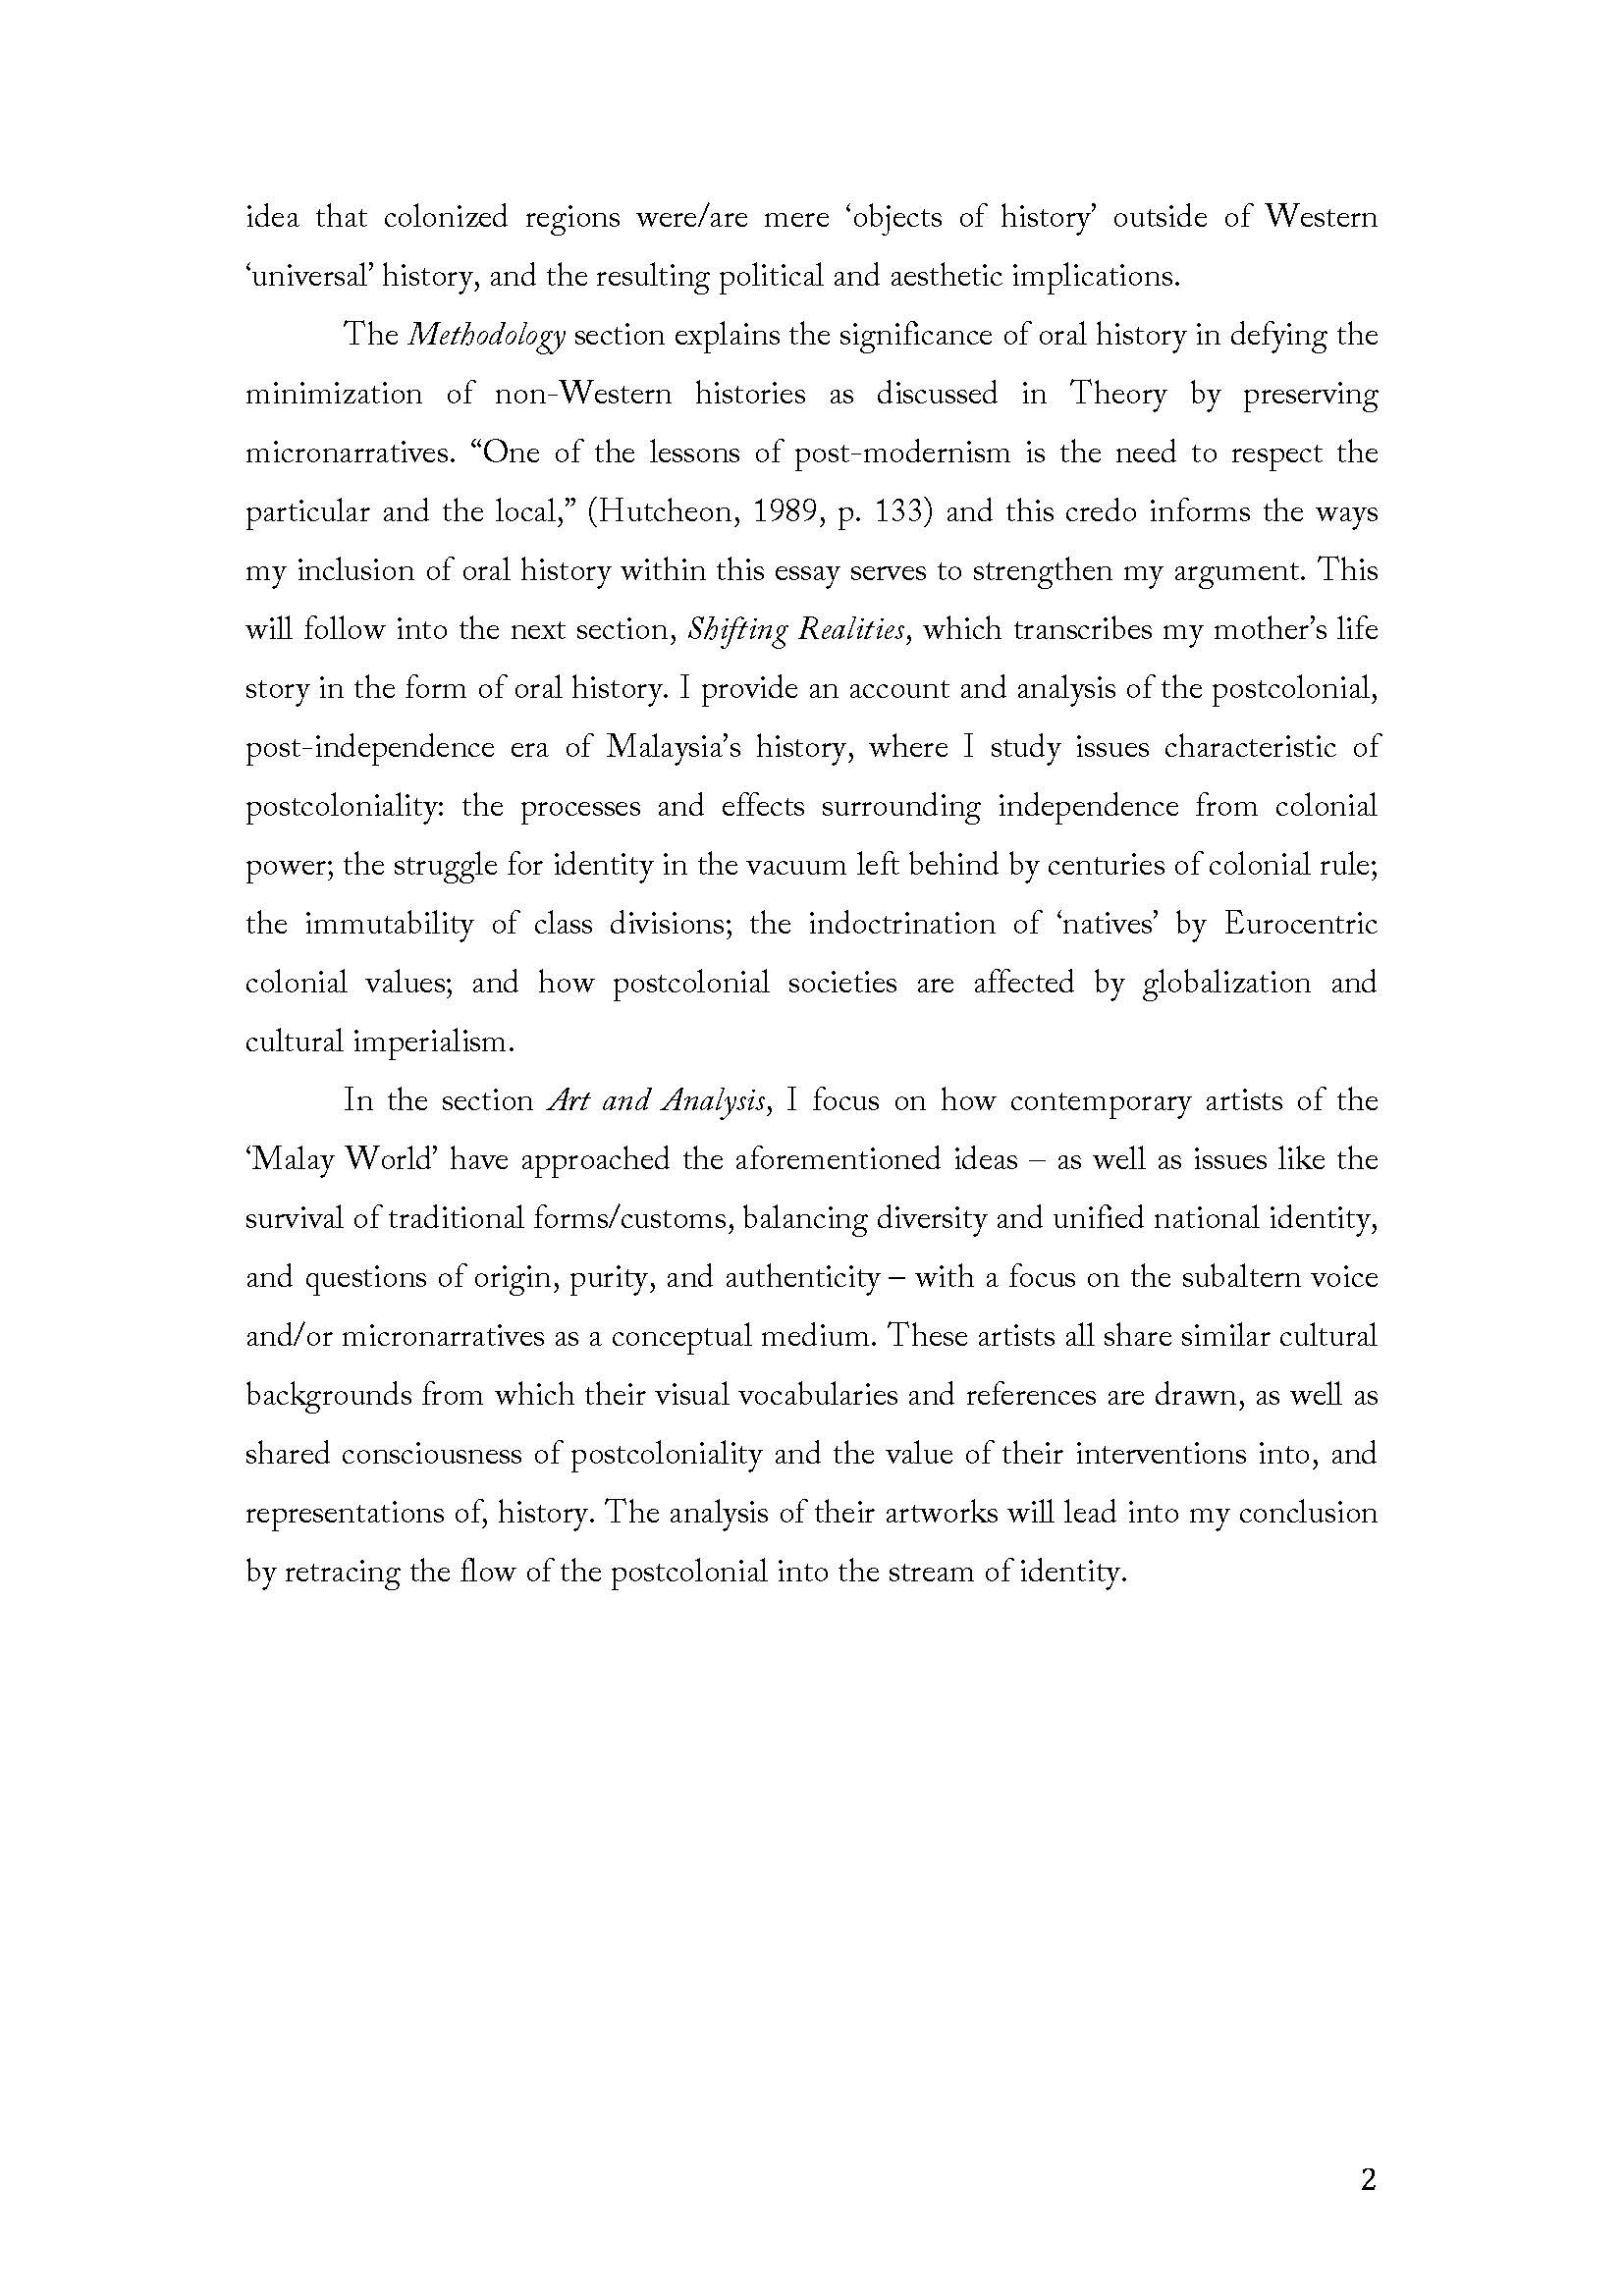 dissertationdraft2quoted_Page_02_1654